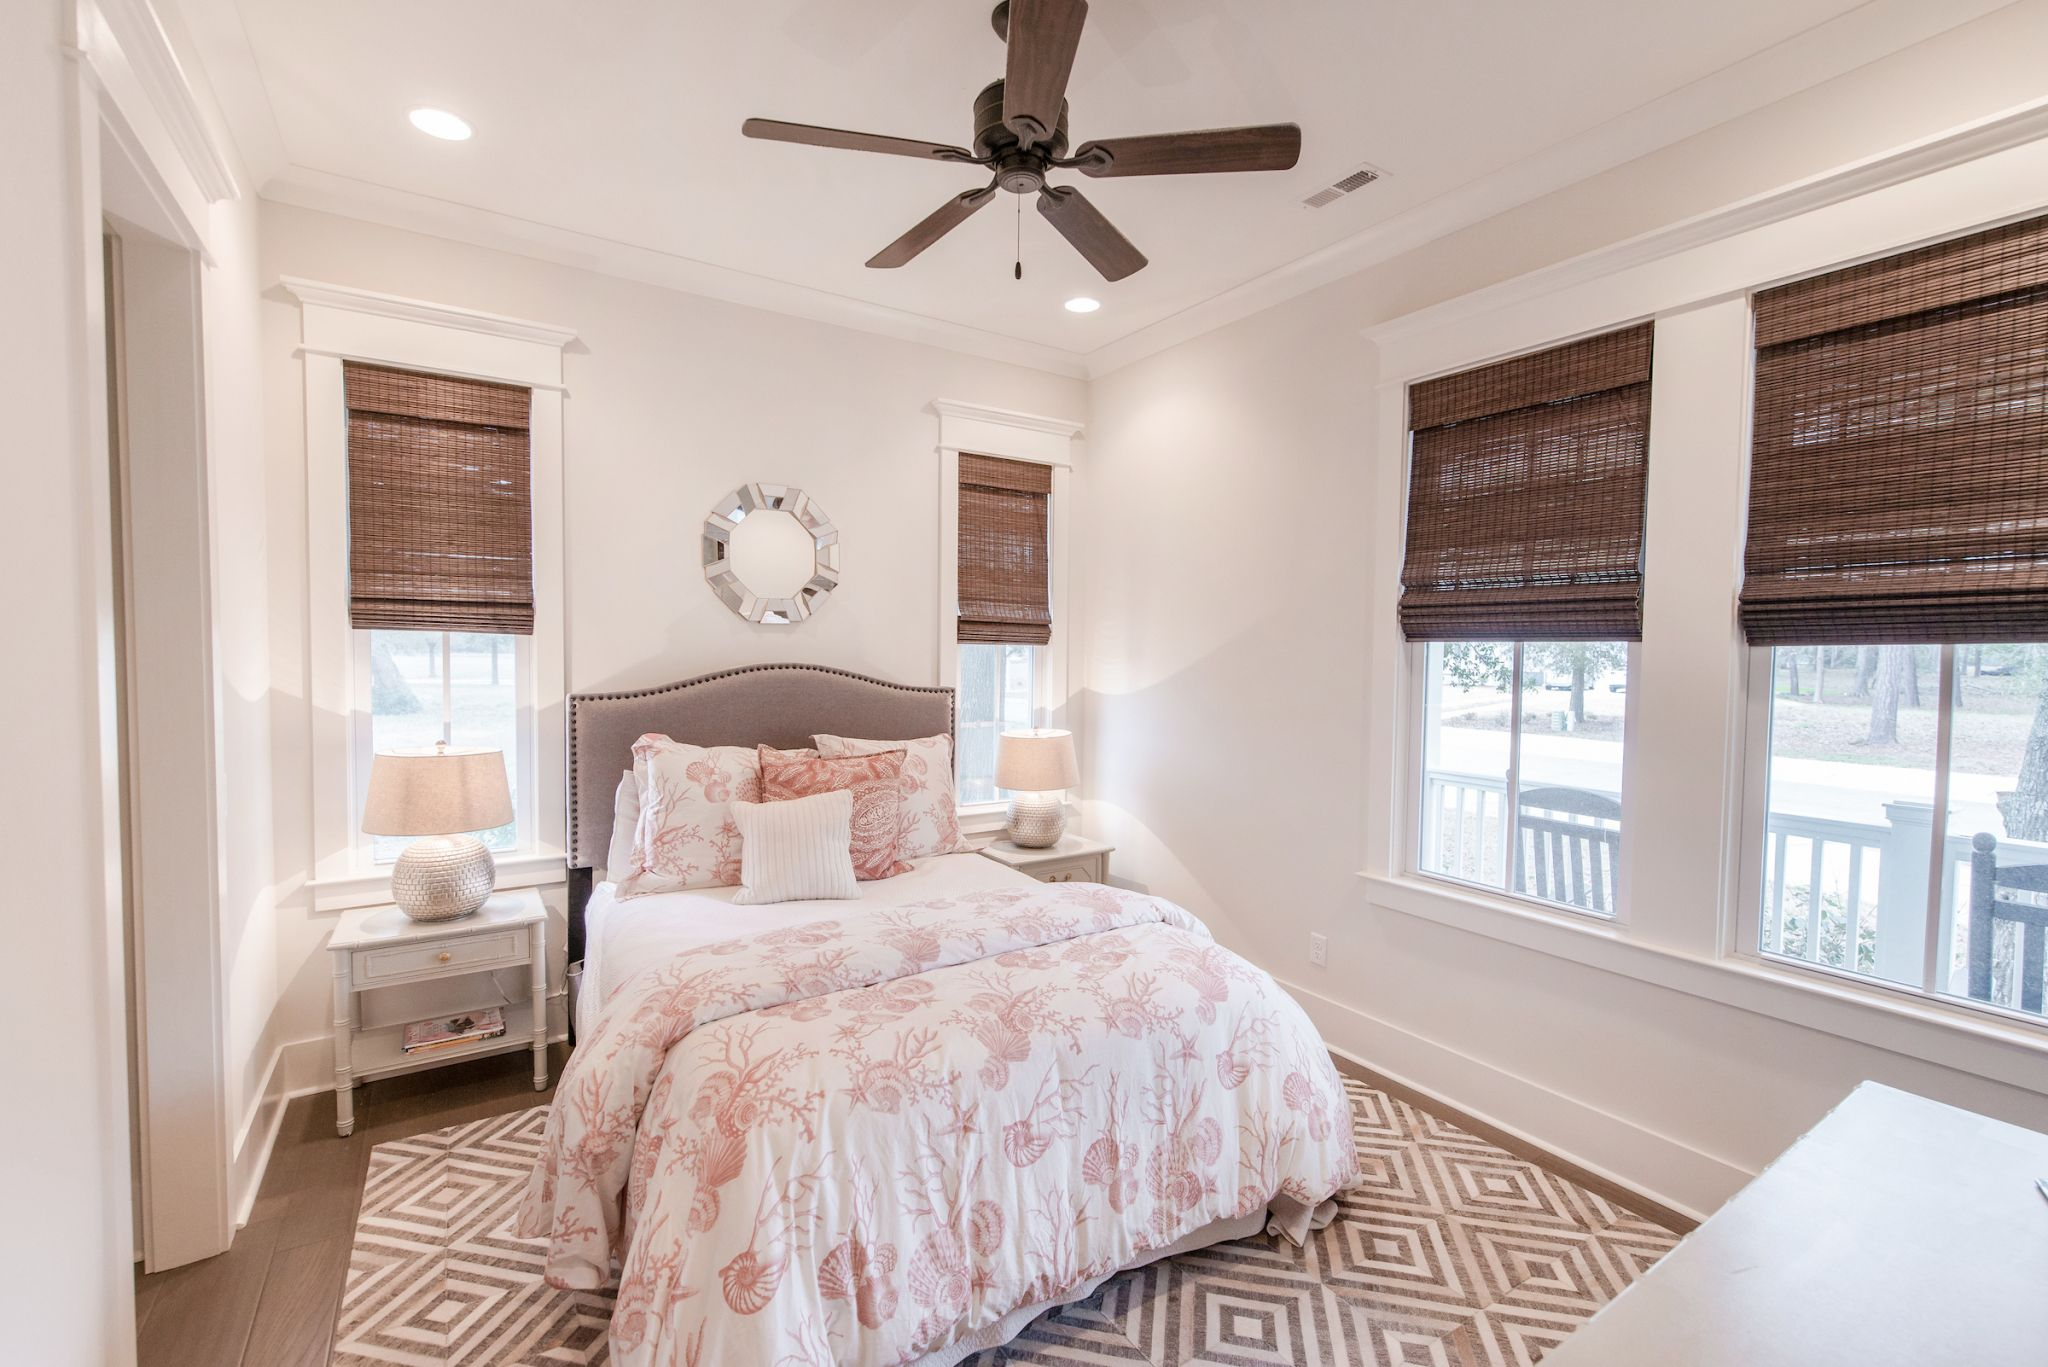 Home Tour Guest Bedroom